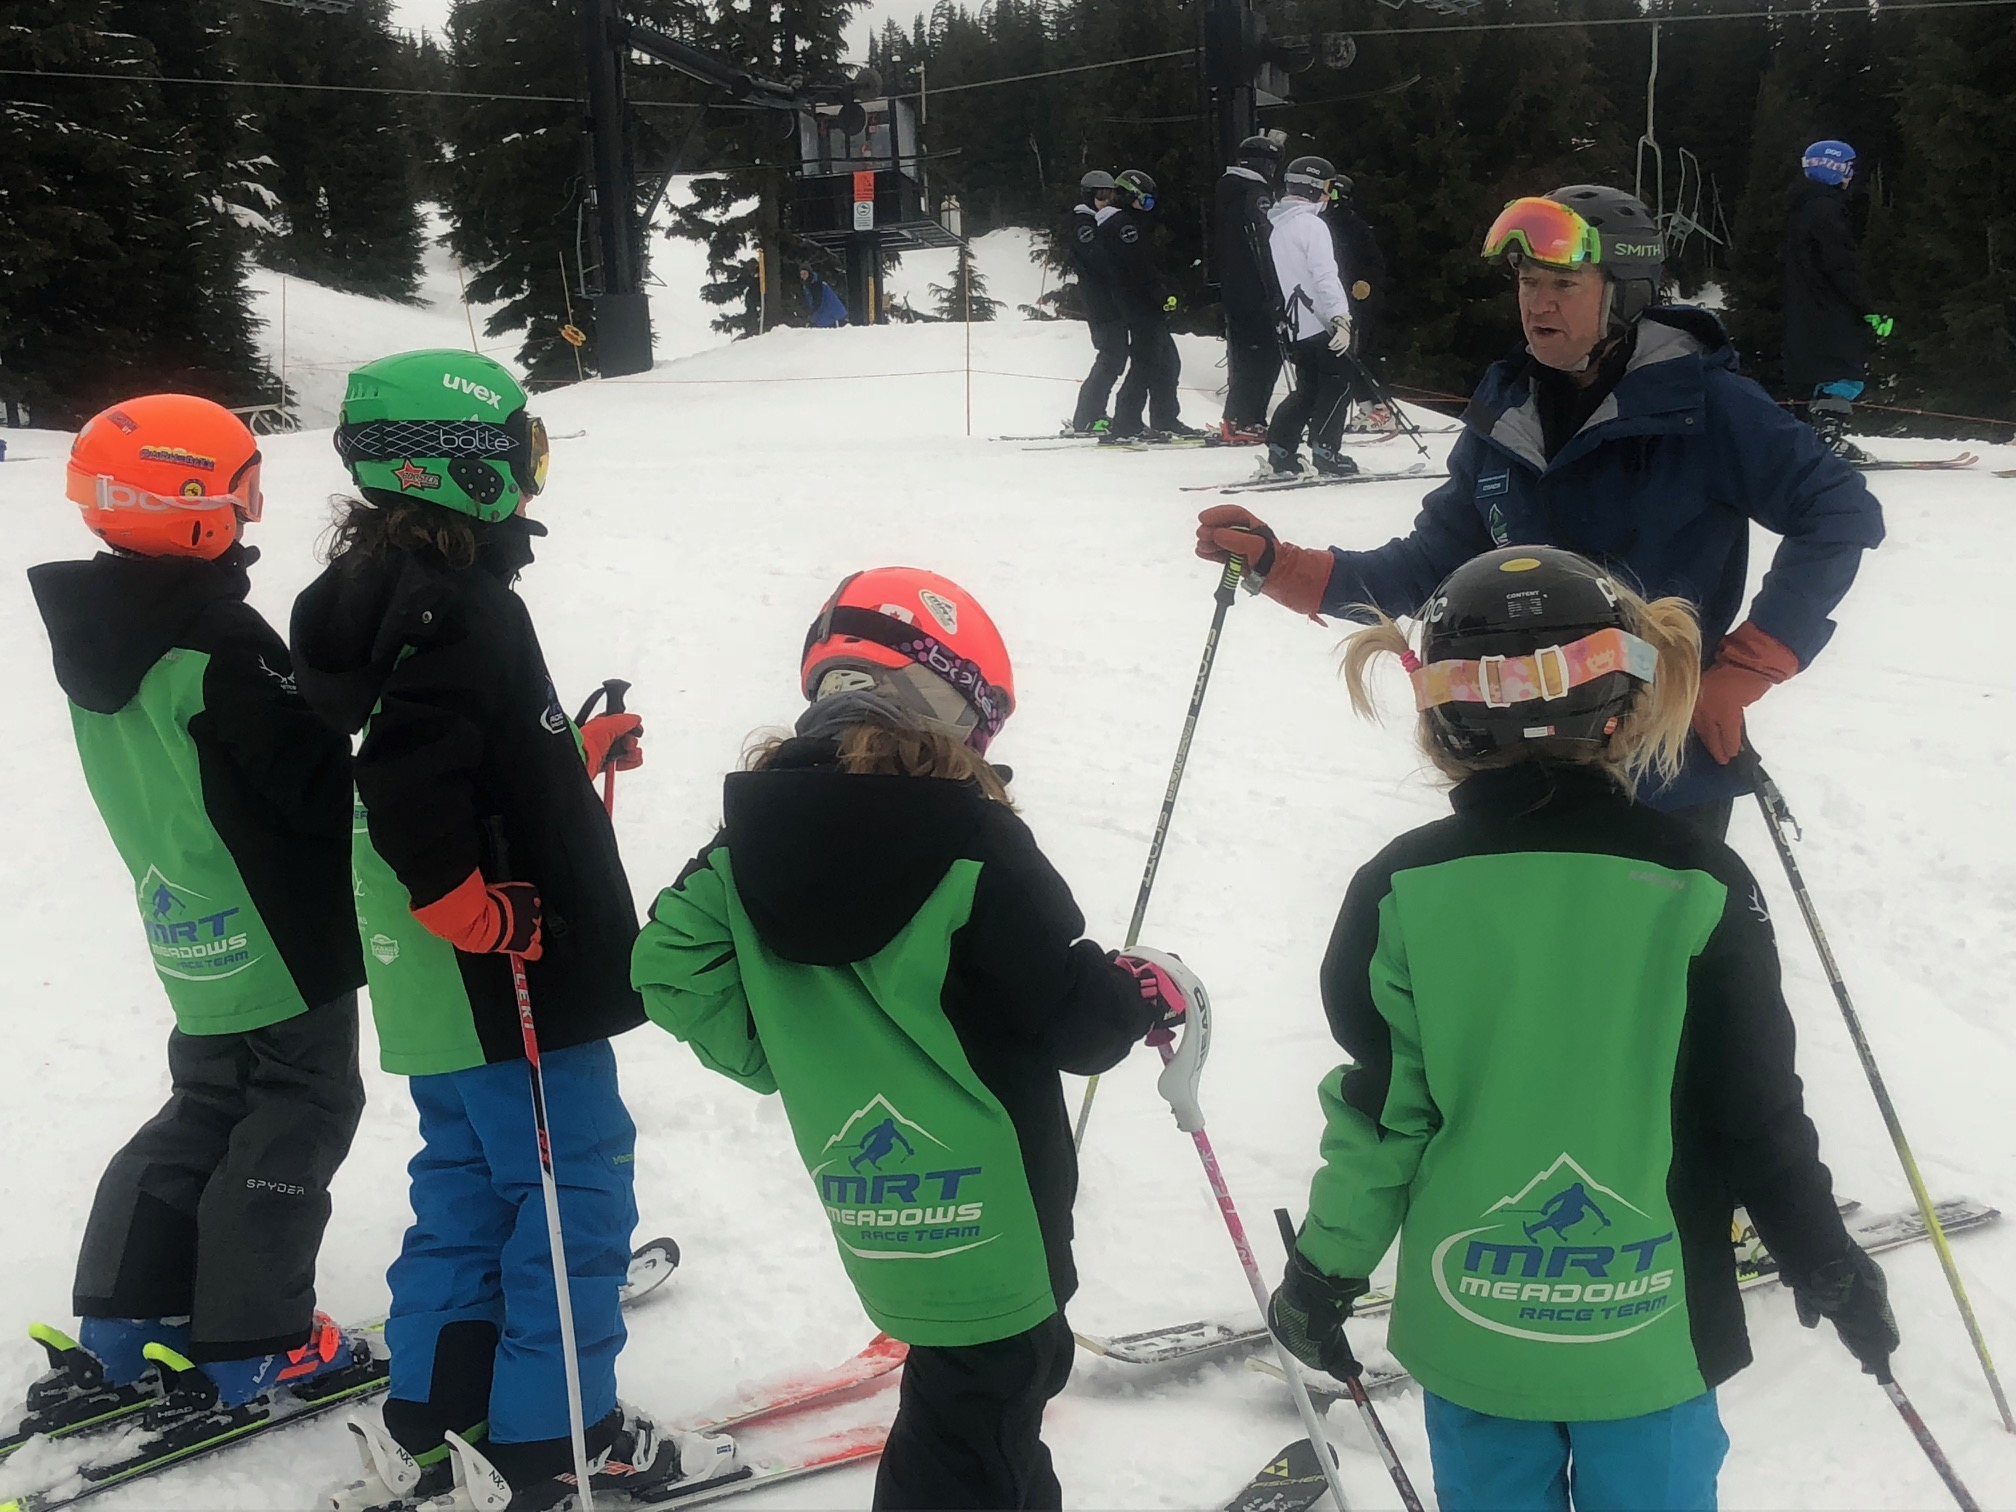 Camps! - Thanksgiving Camp Nov. 29/30 & Dec 1Winter Ski Camp December 27-30MLK Weekend Ski Camp MLK Jan. 18-20Presidents Day Weekend Ski Camp Feb. 15-17